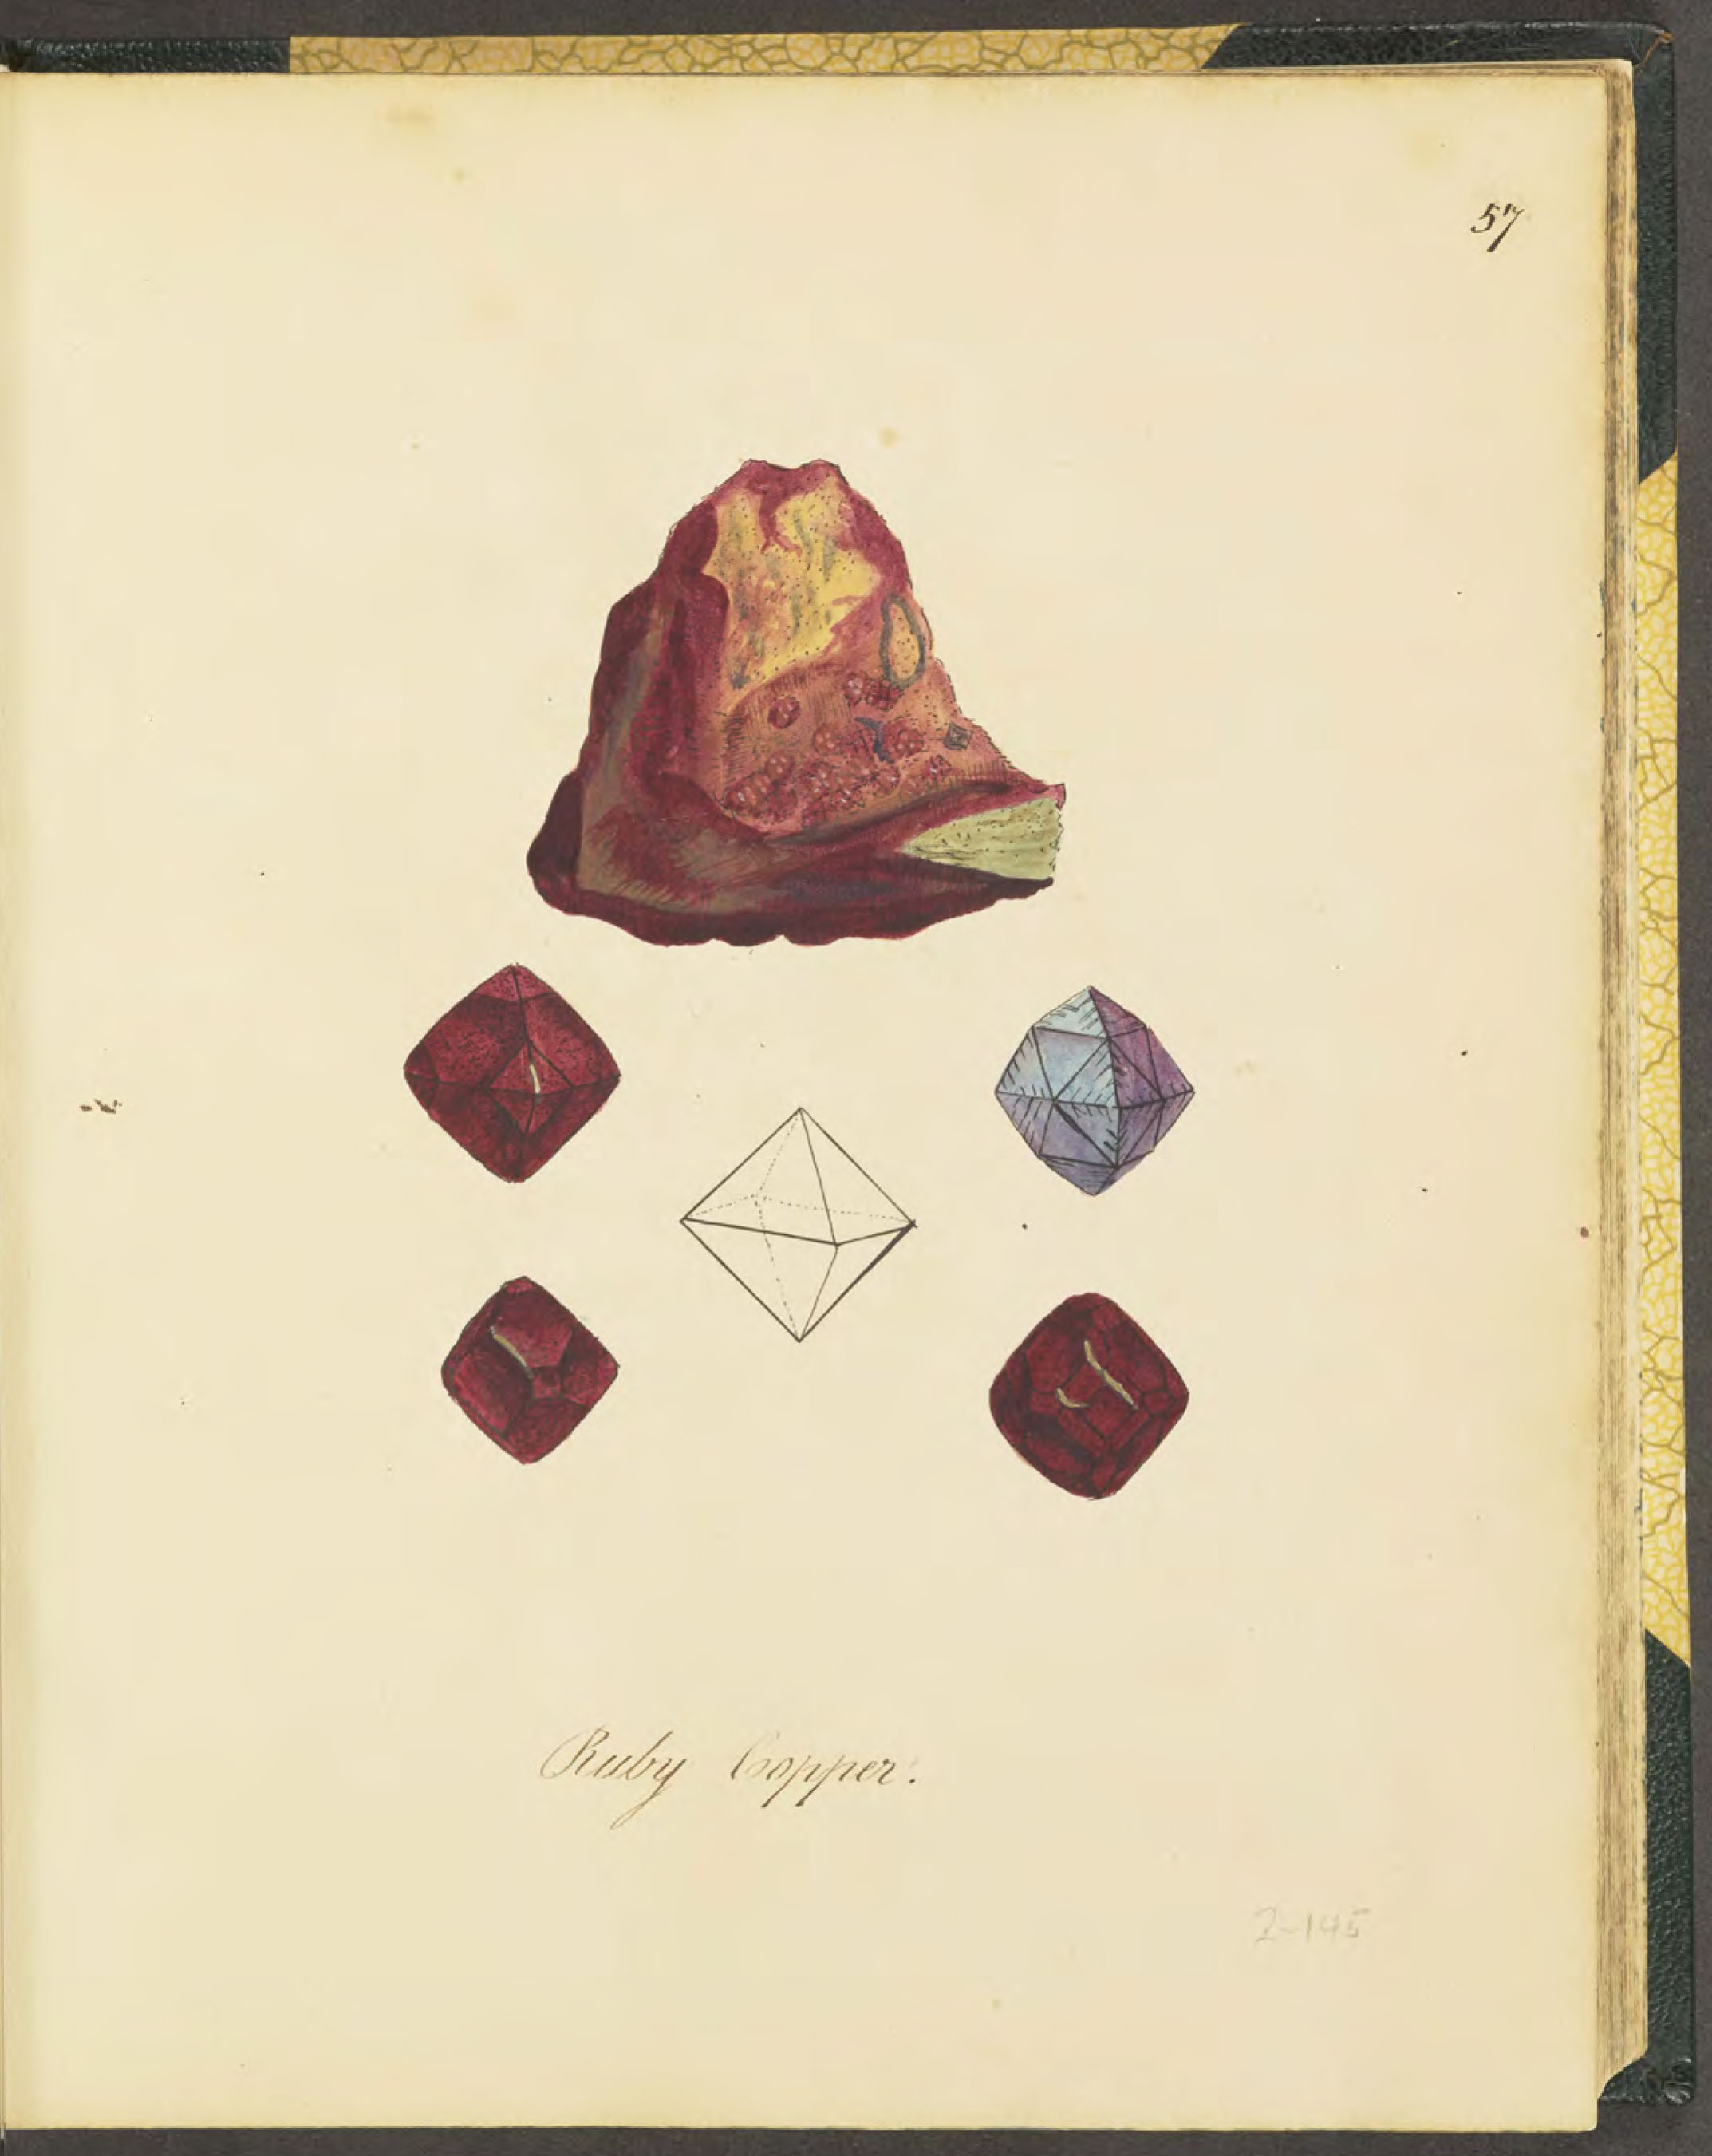 Red Oxide of Copper.  From Martha Proby's   British Mineralogy   (1840). In her text she gives the locality of this specimen as Cornwall.